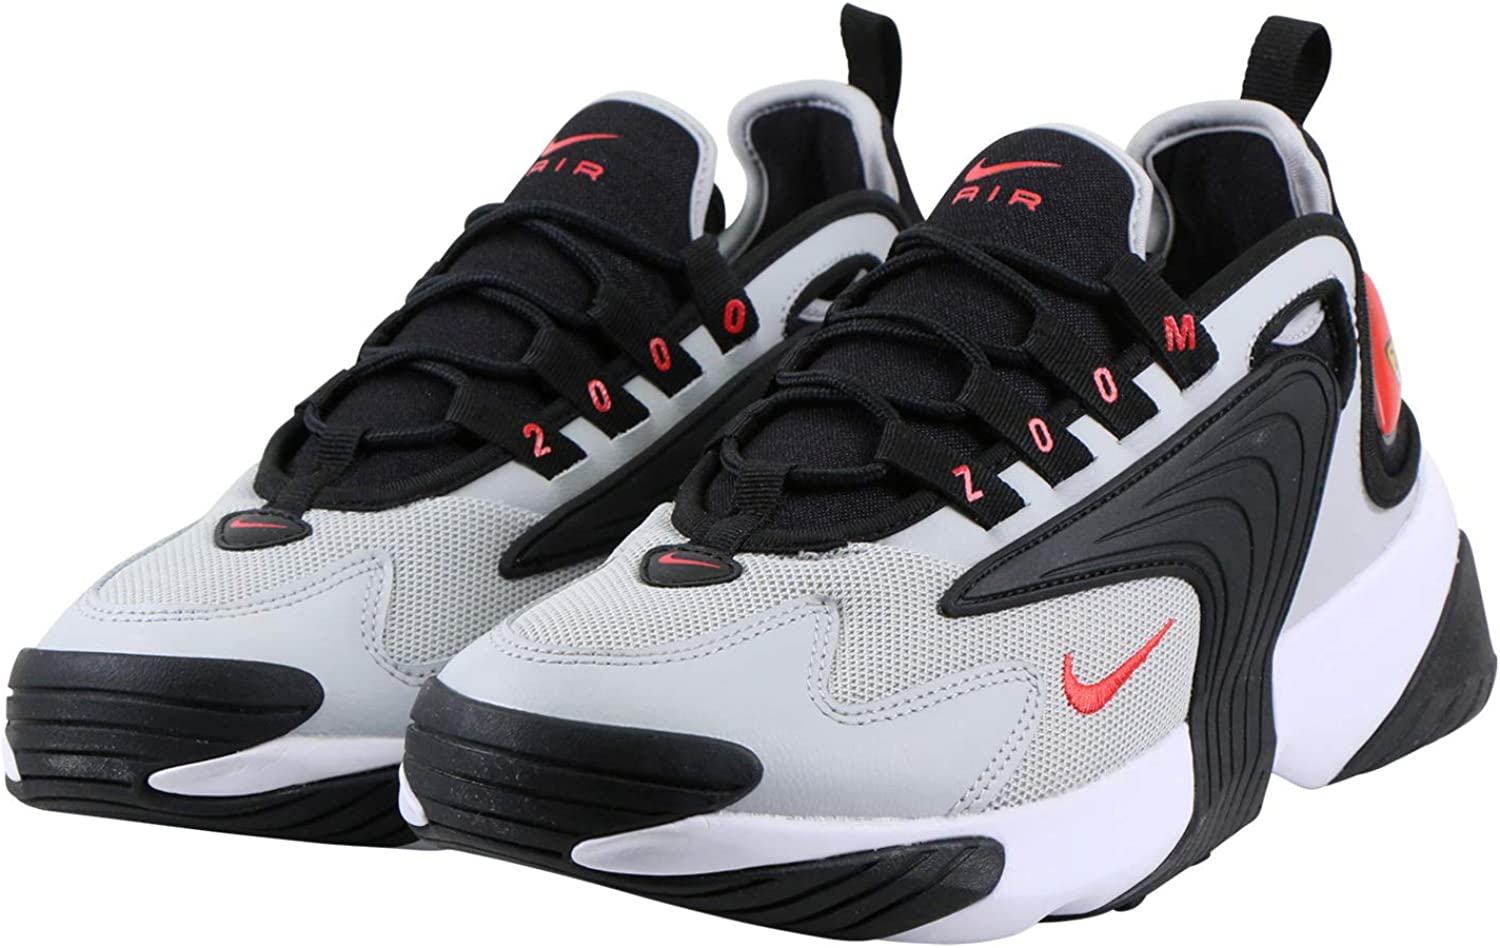 Chaussures de Course Homme Nike Zoom 2k_ao0269 Running Chaussures ...